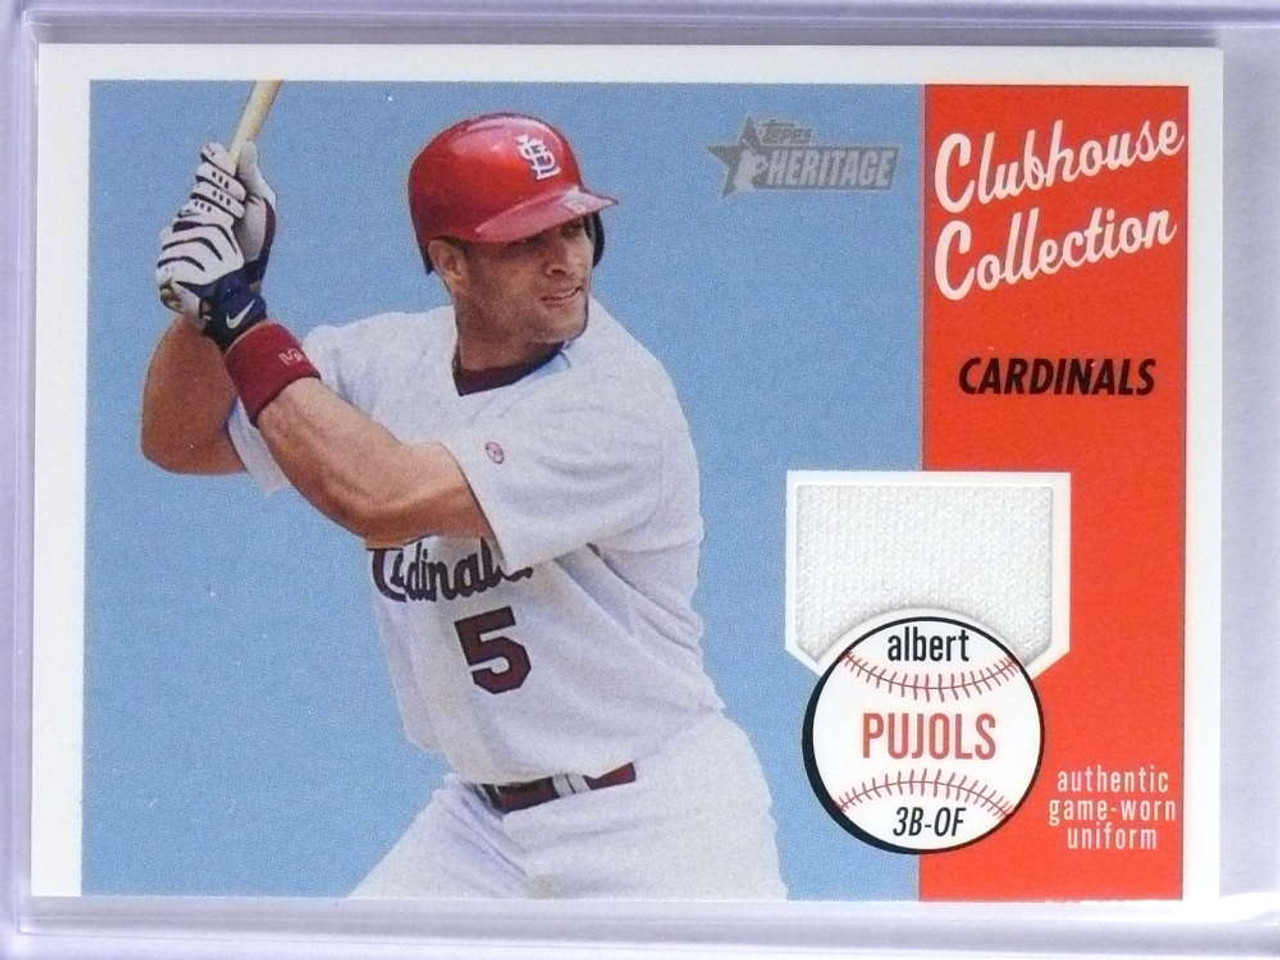 2003 Topps Heritage Clubhouse Collection Albert Pujols Jersey Ccap 76023